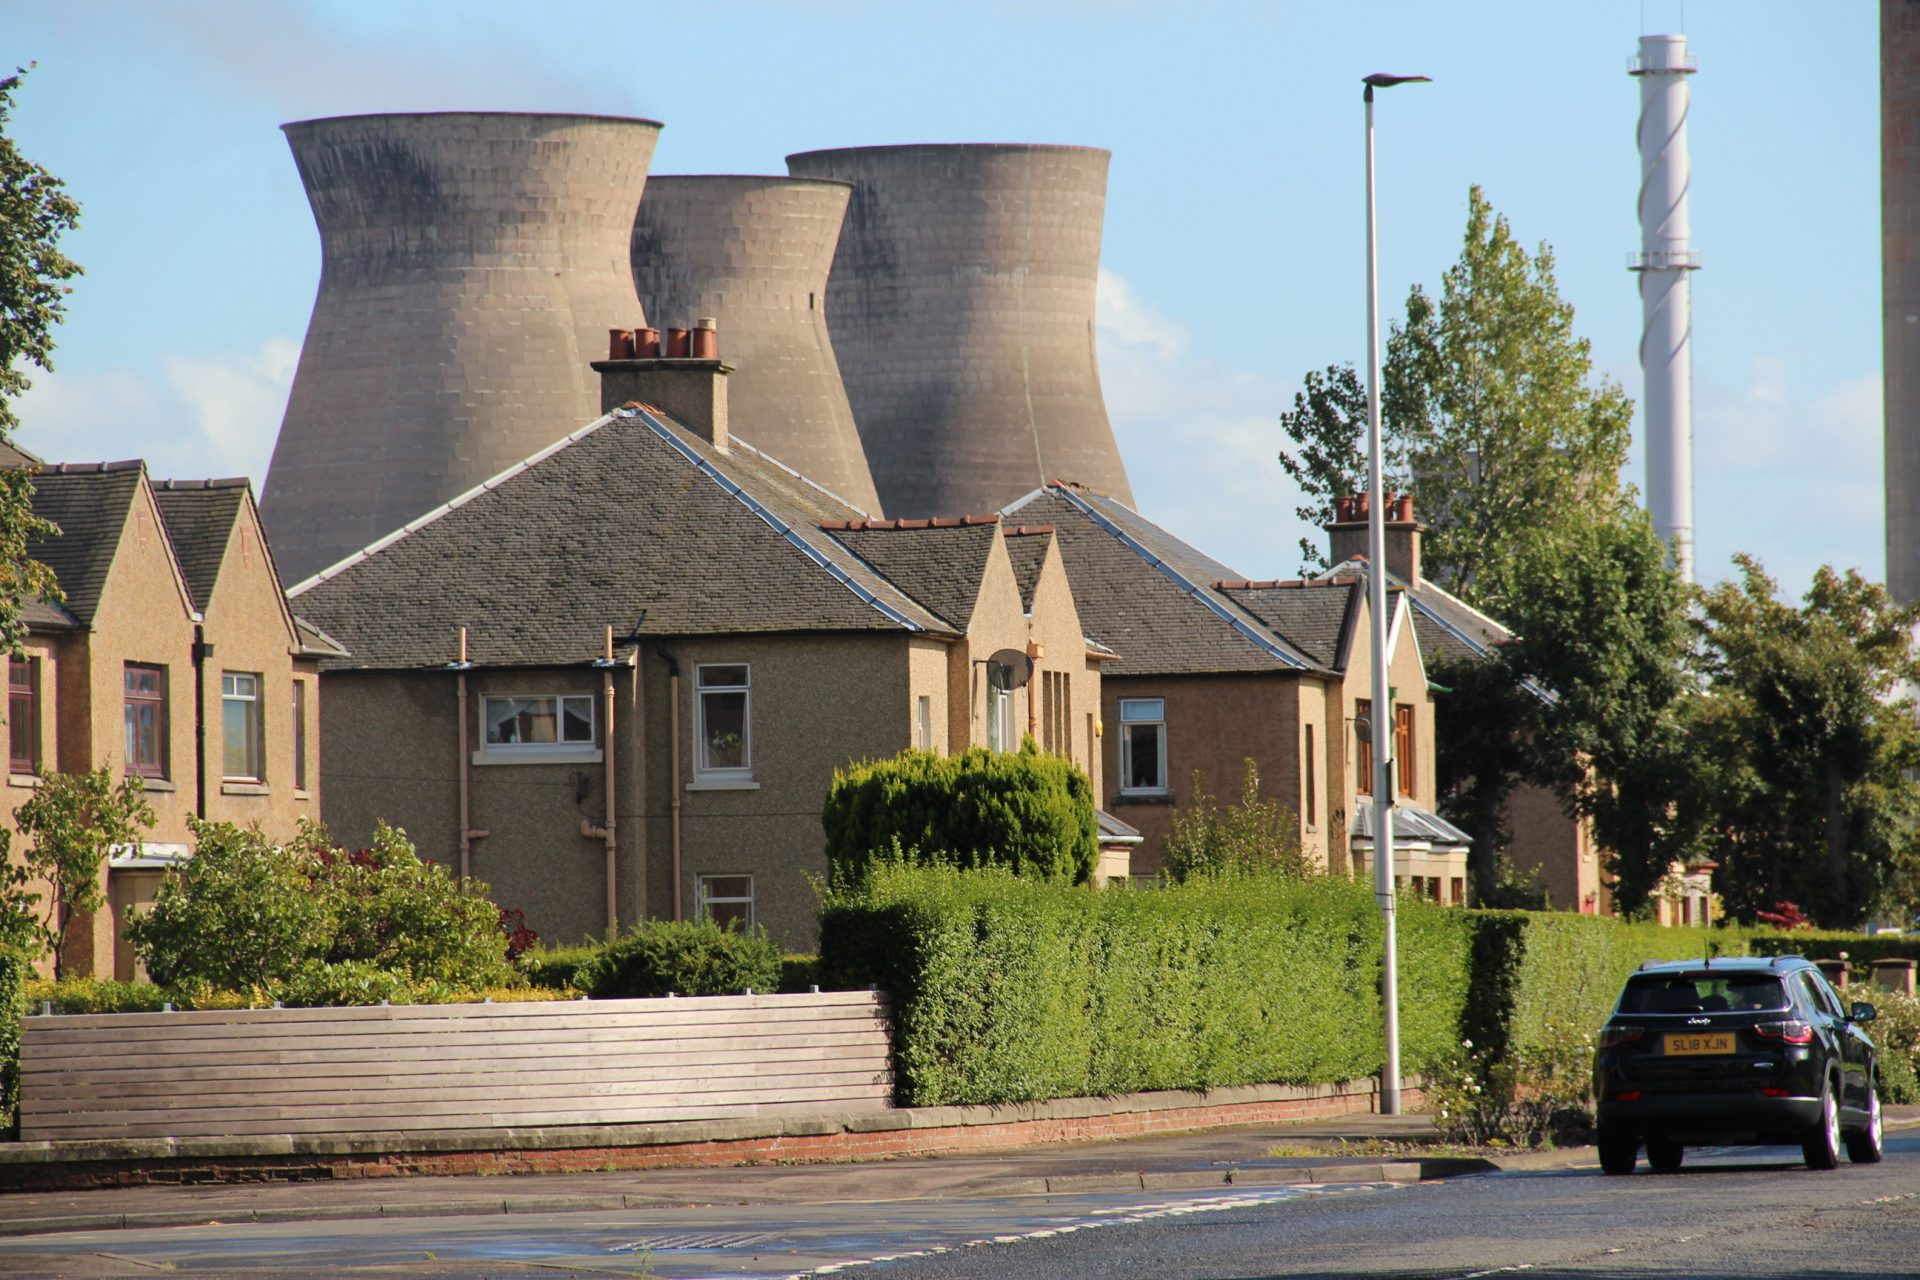 The Grangemouth refinery and petrochemical plant in Grangemouth, Scotland. Photo: Reid R. Frazier